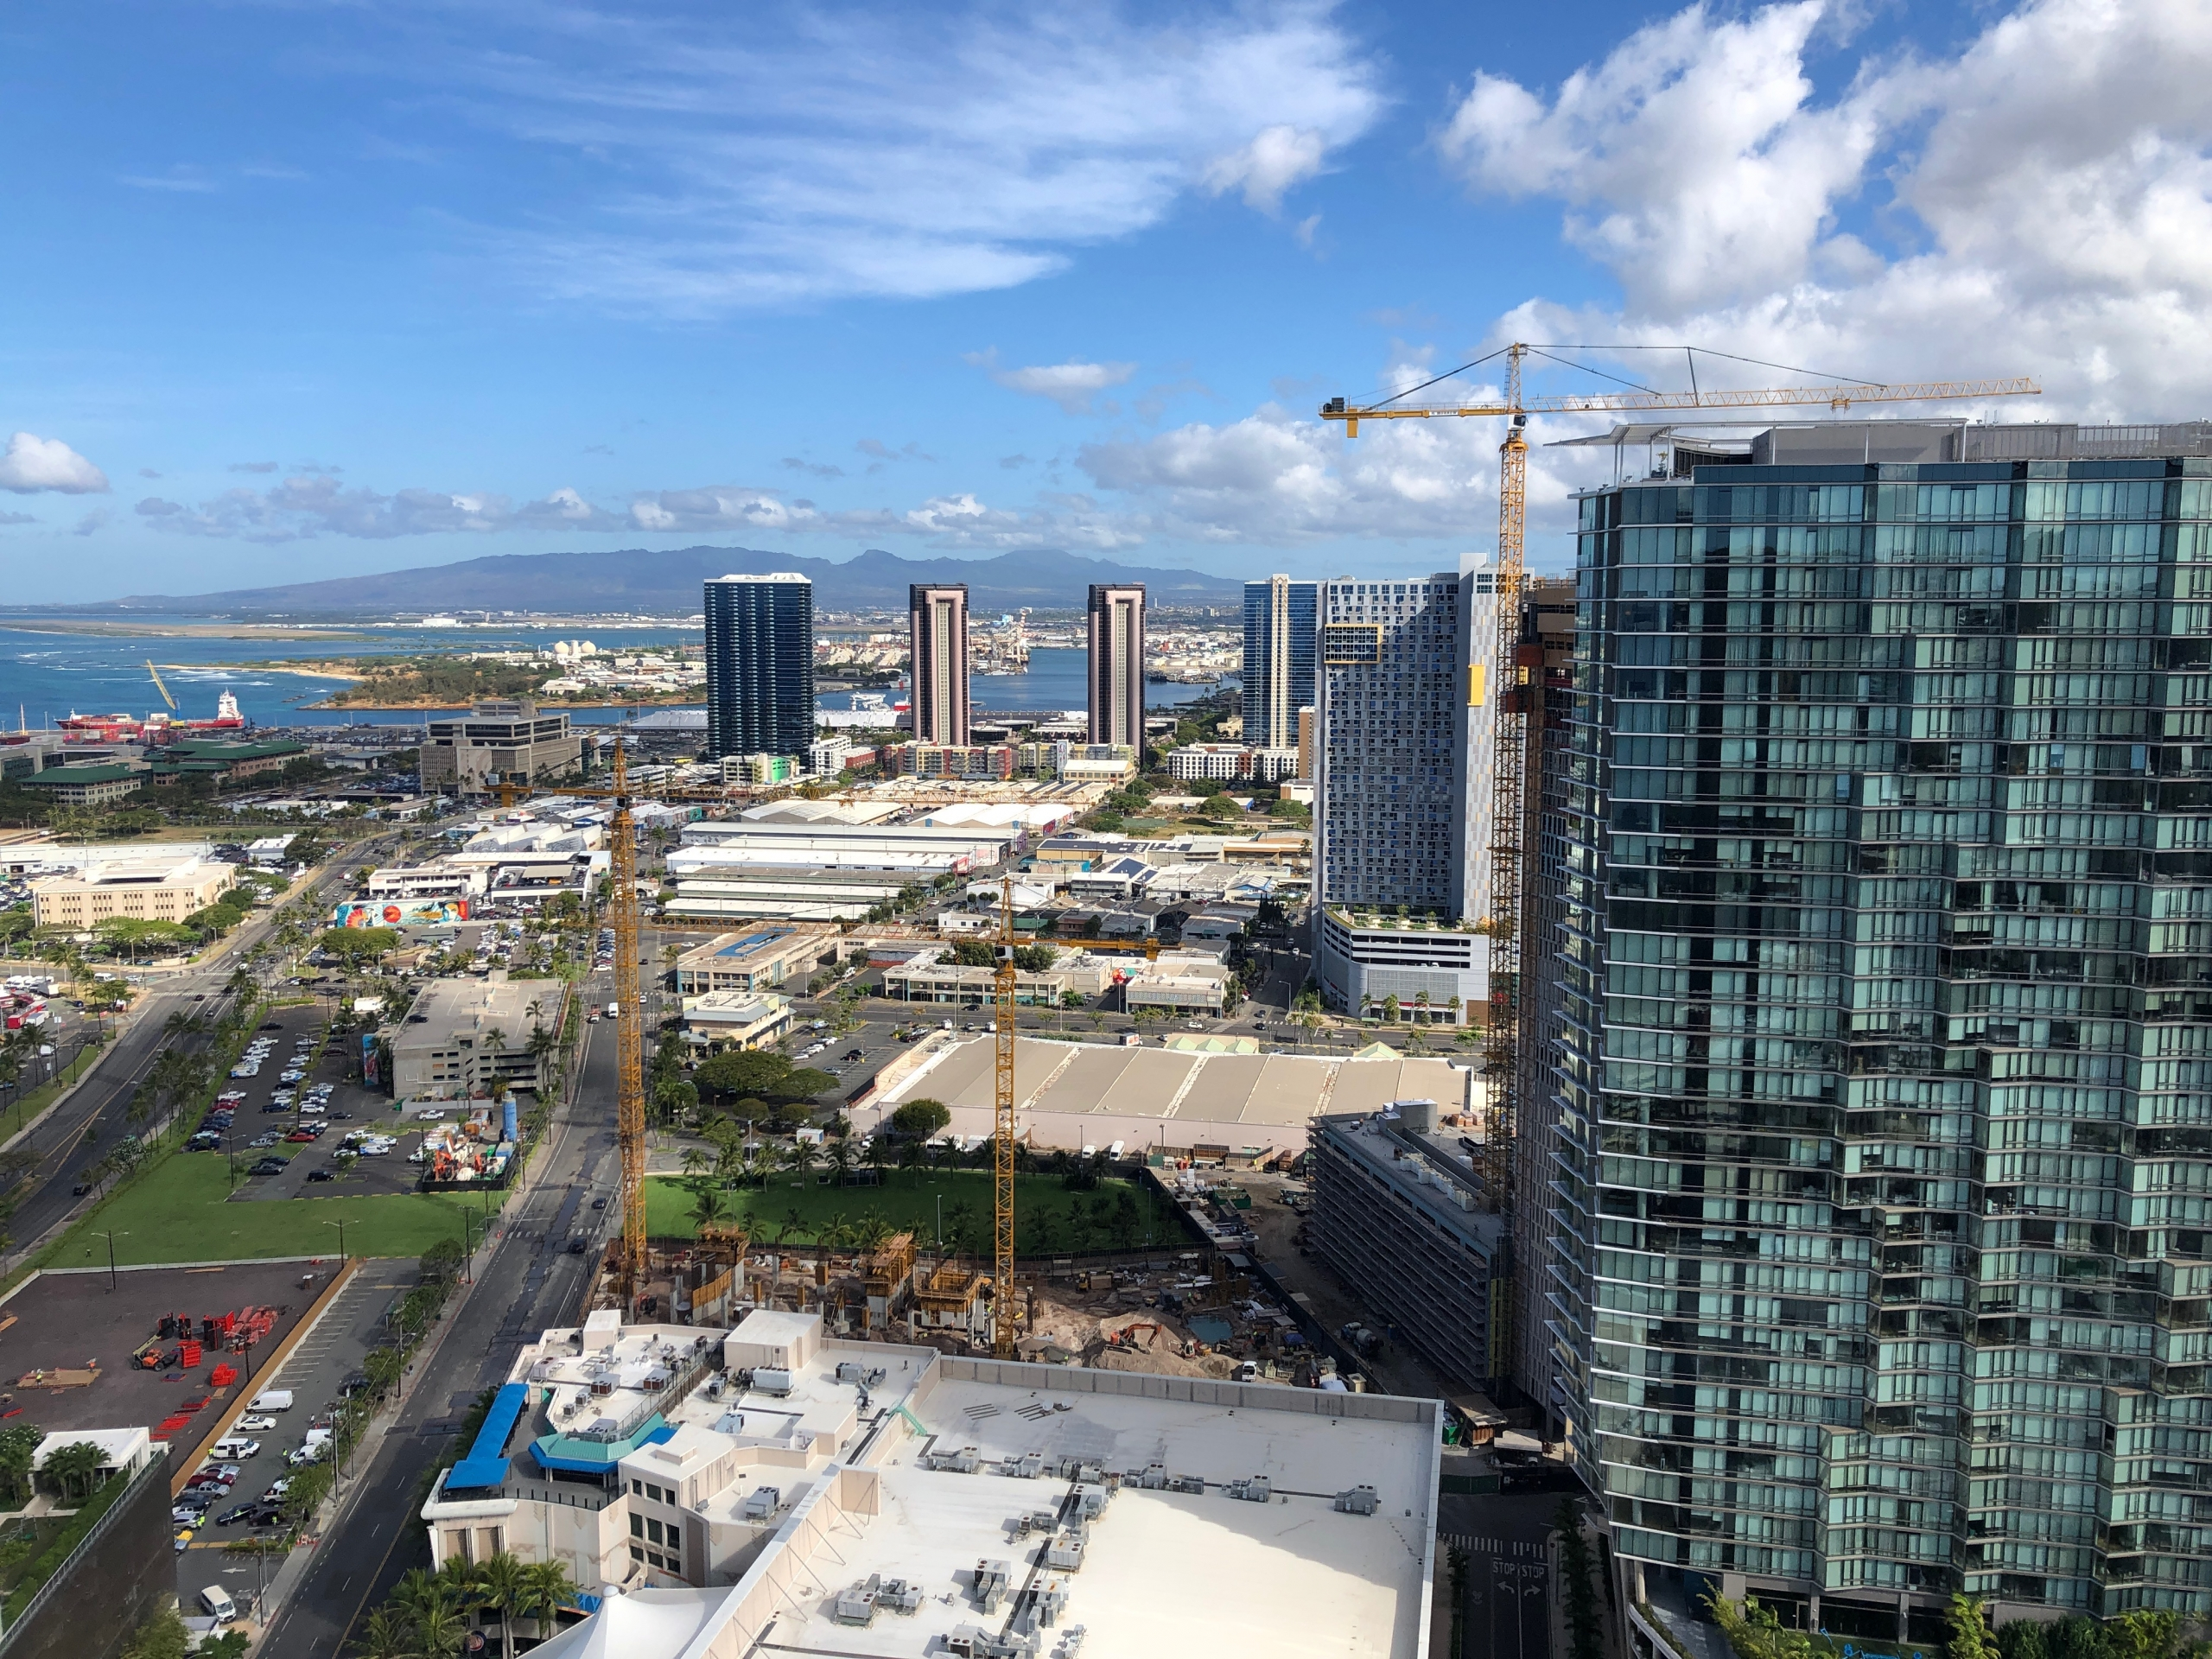 Ko'ula condo construction update May 28, 2020